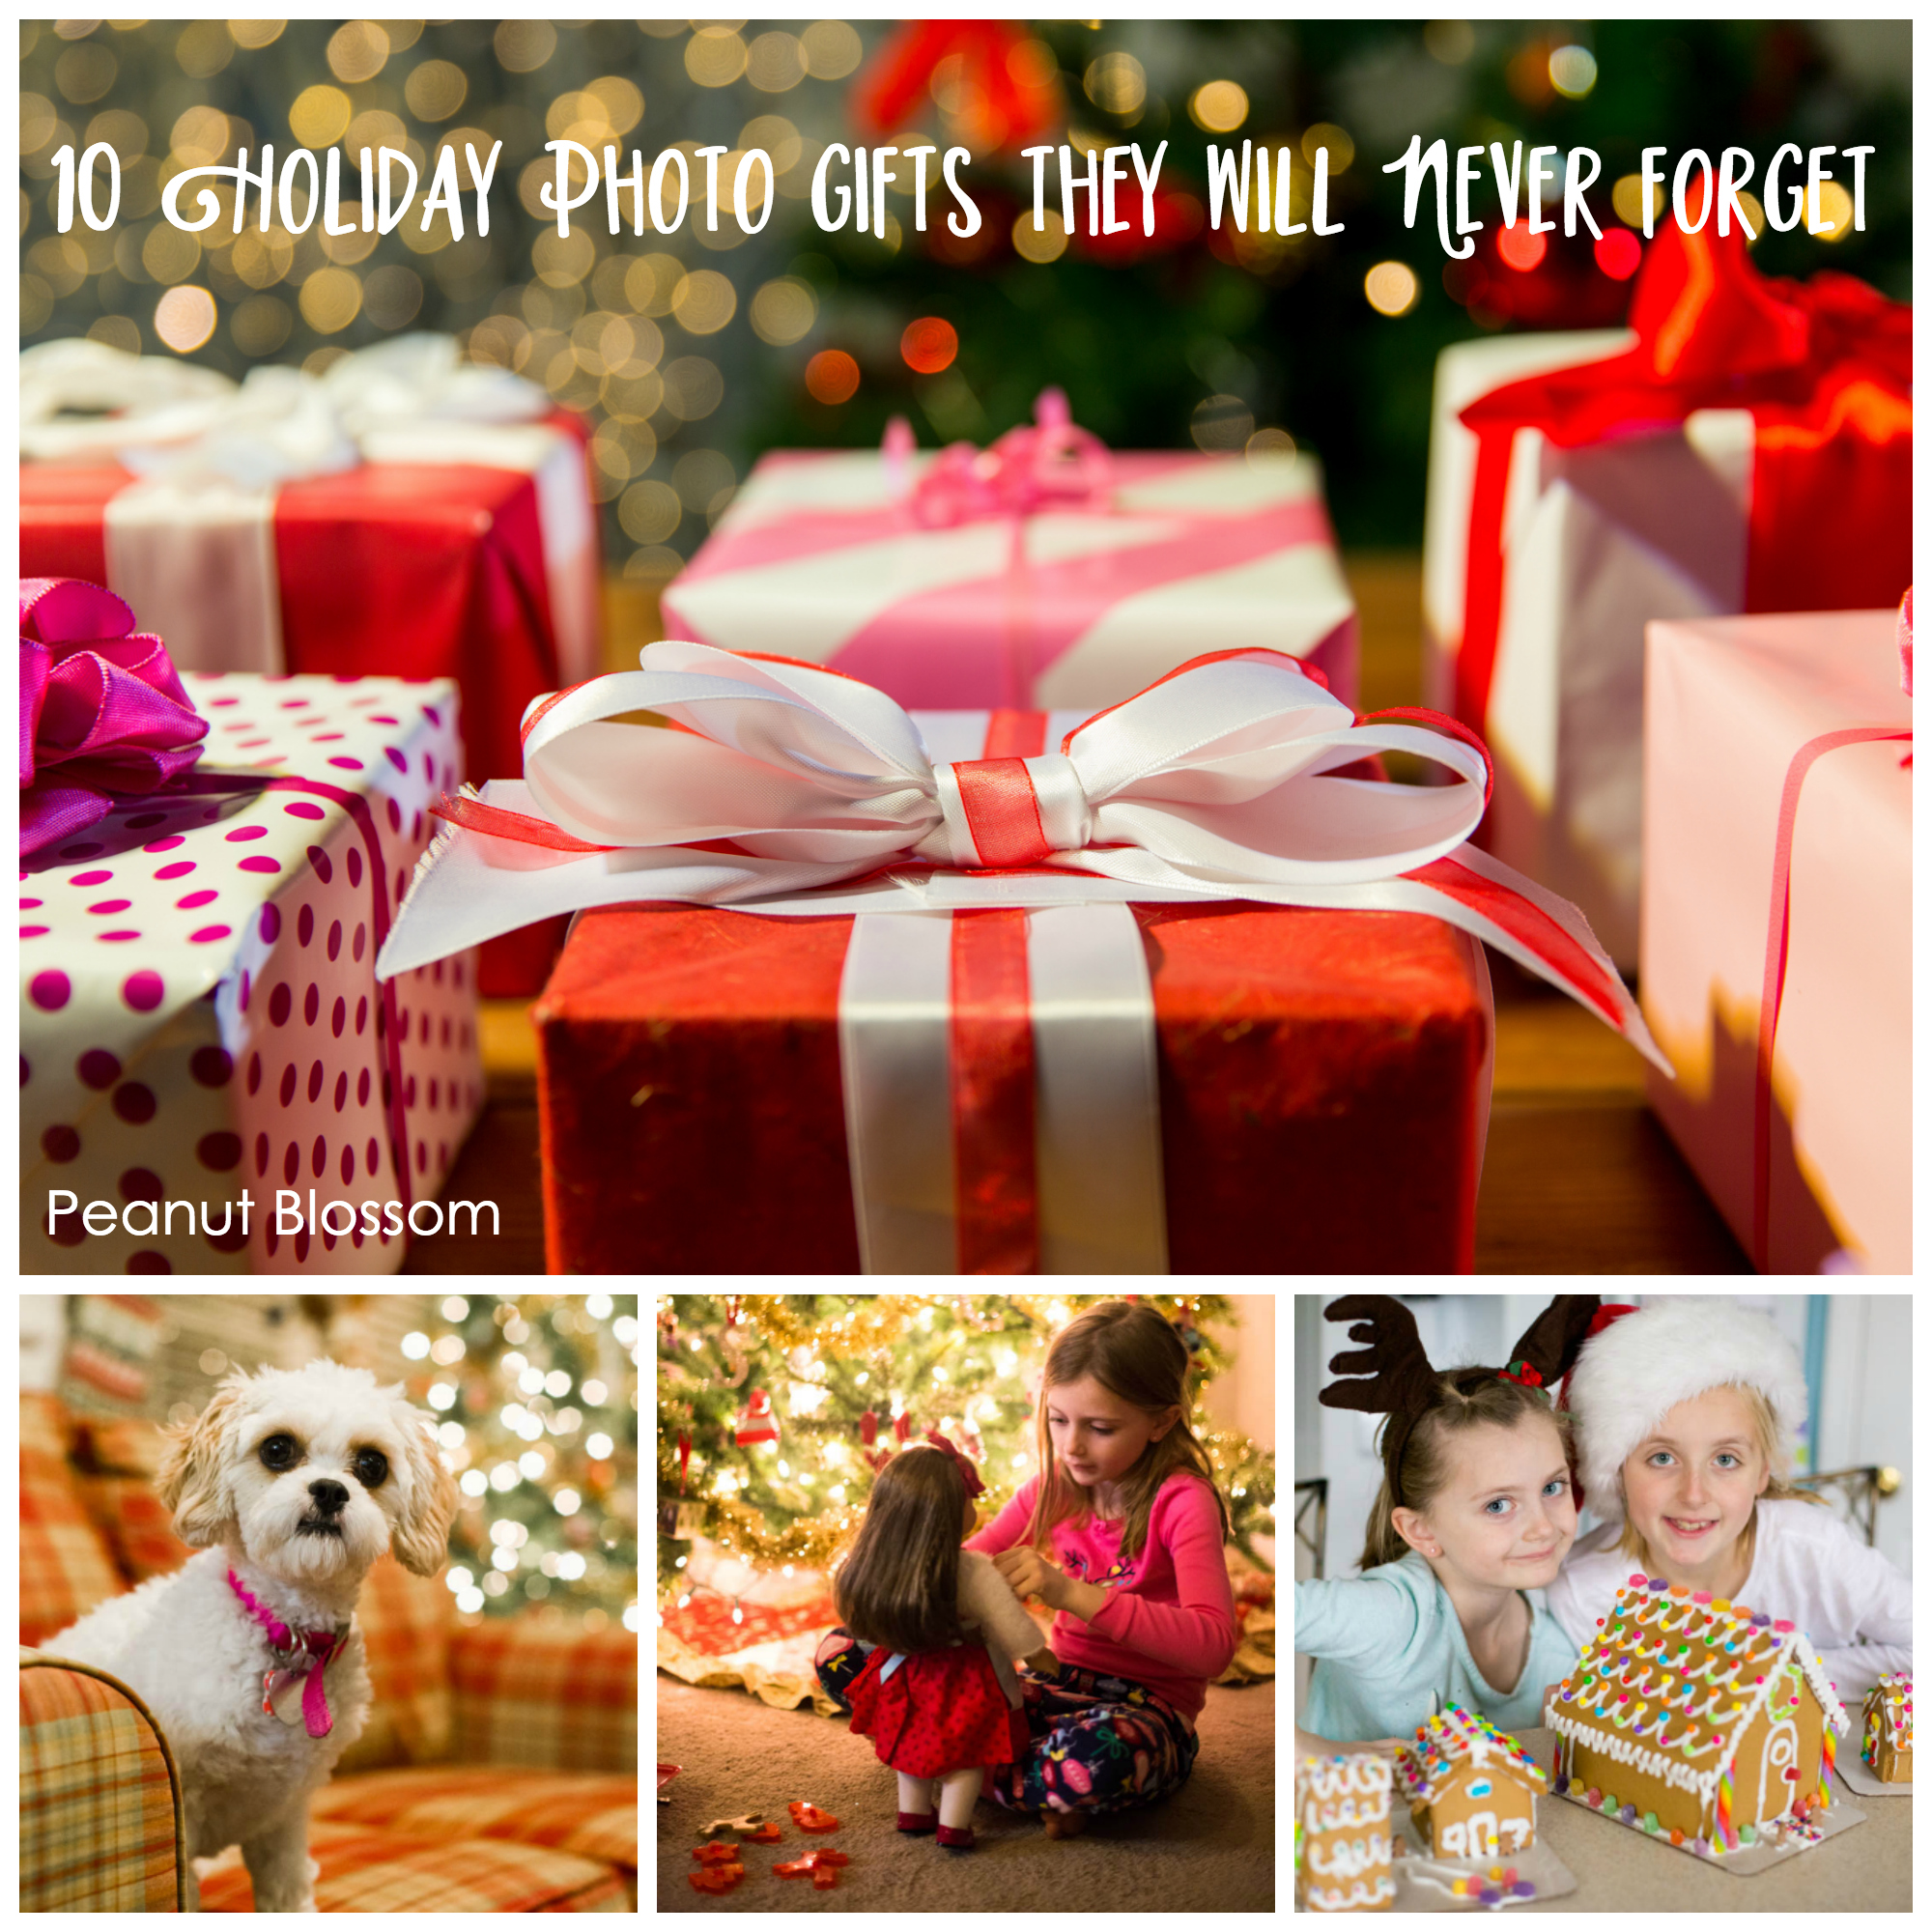 10 holiday photo gift ideas your family will never forget